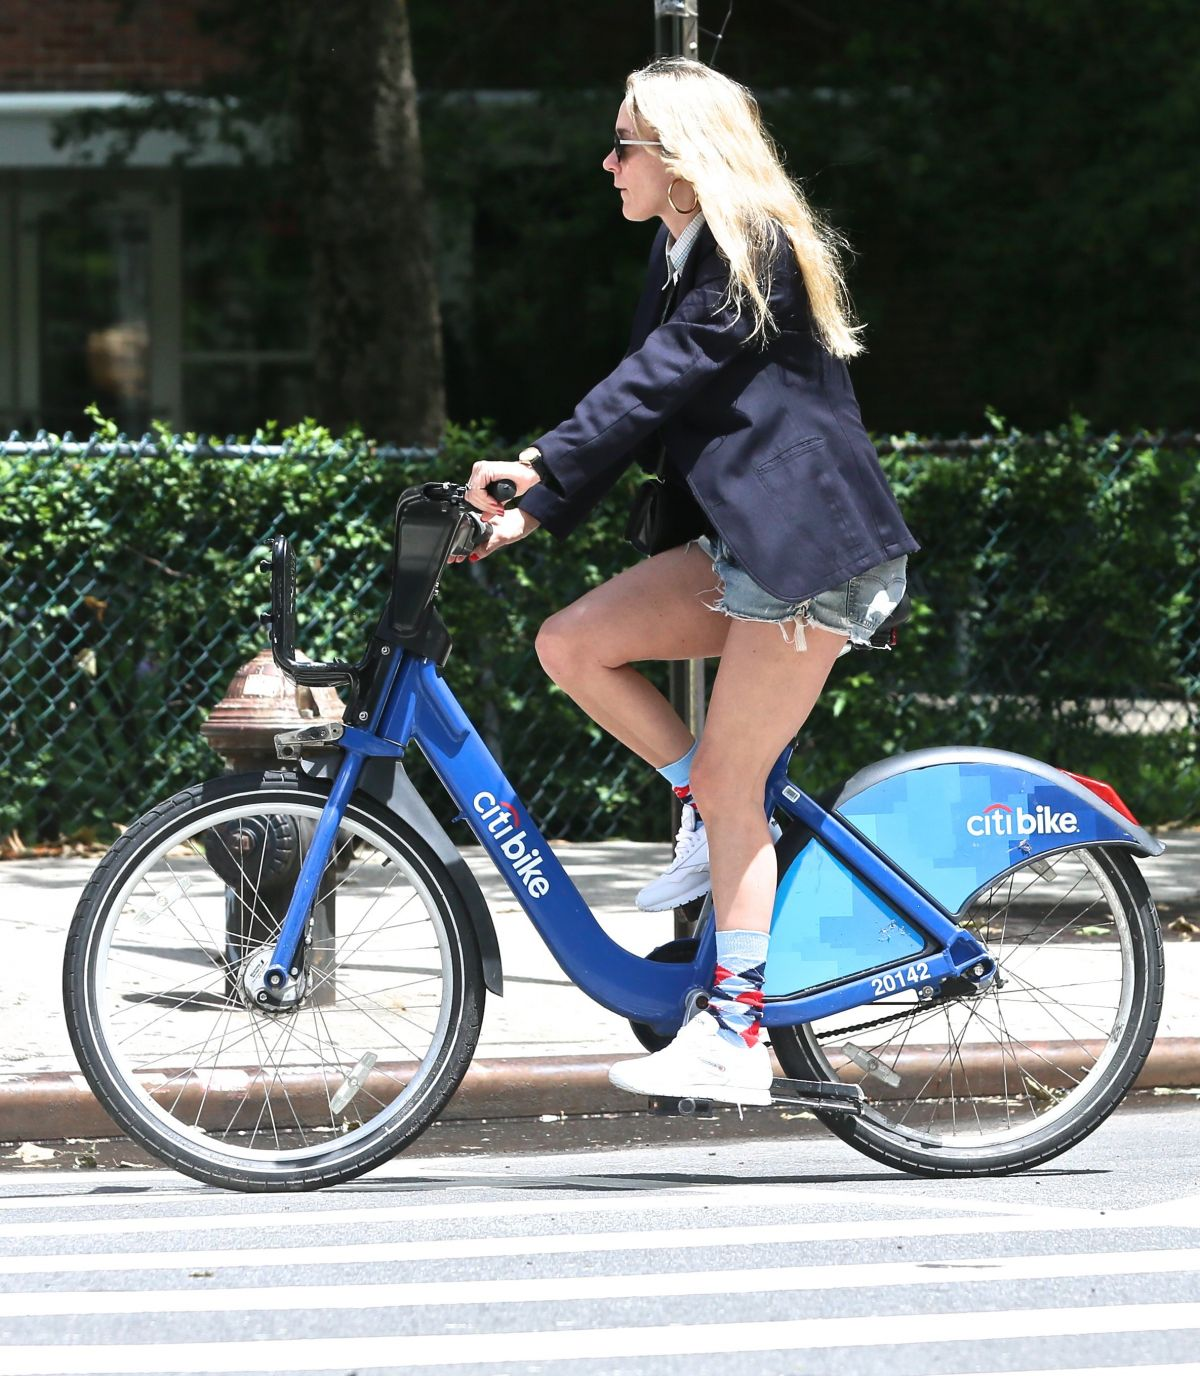 chloe sevigny riding a citybike out in new york 05 28 2017. Black Bedroom Furniture Sets. Home Design Ideas